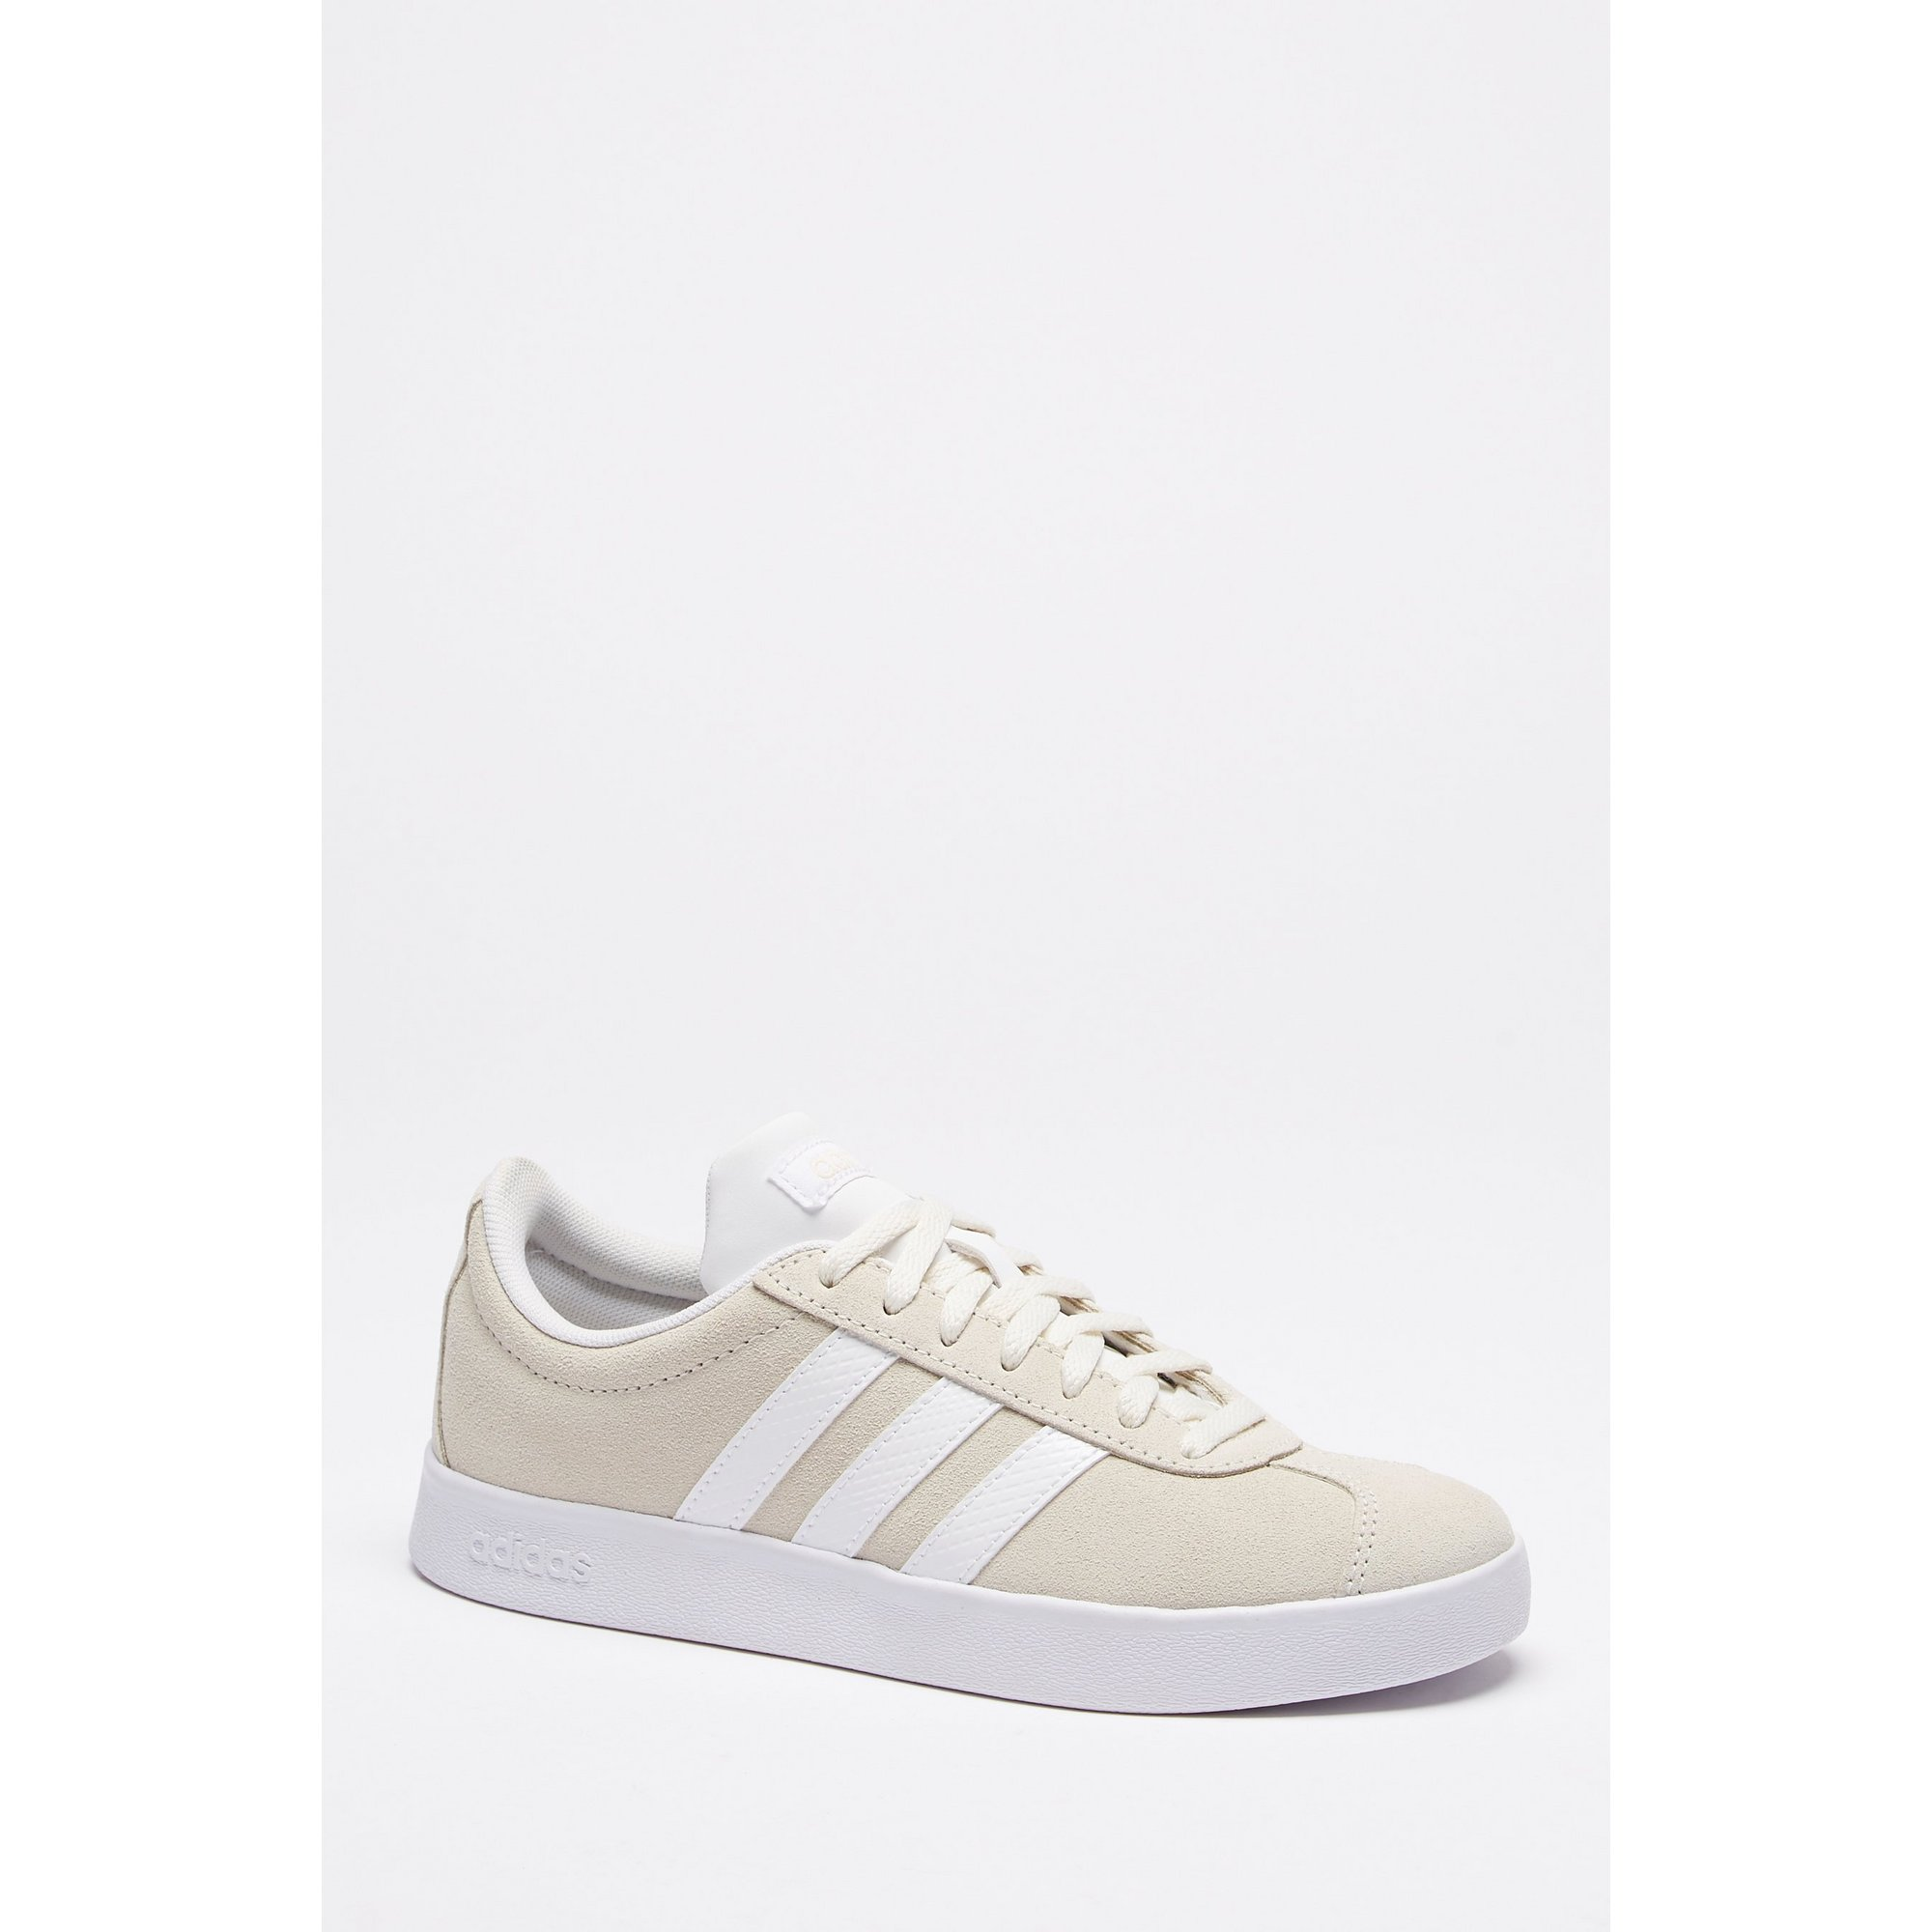 Image of adidas VL Court 2.0 Suede Trainers